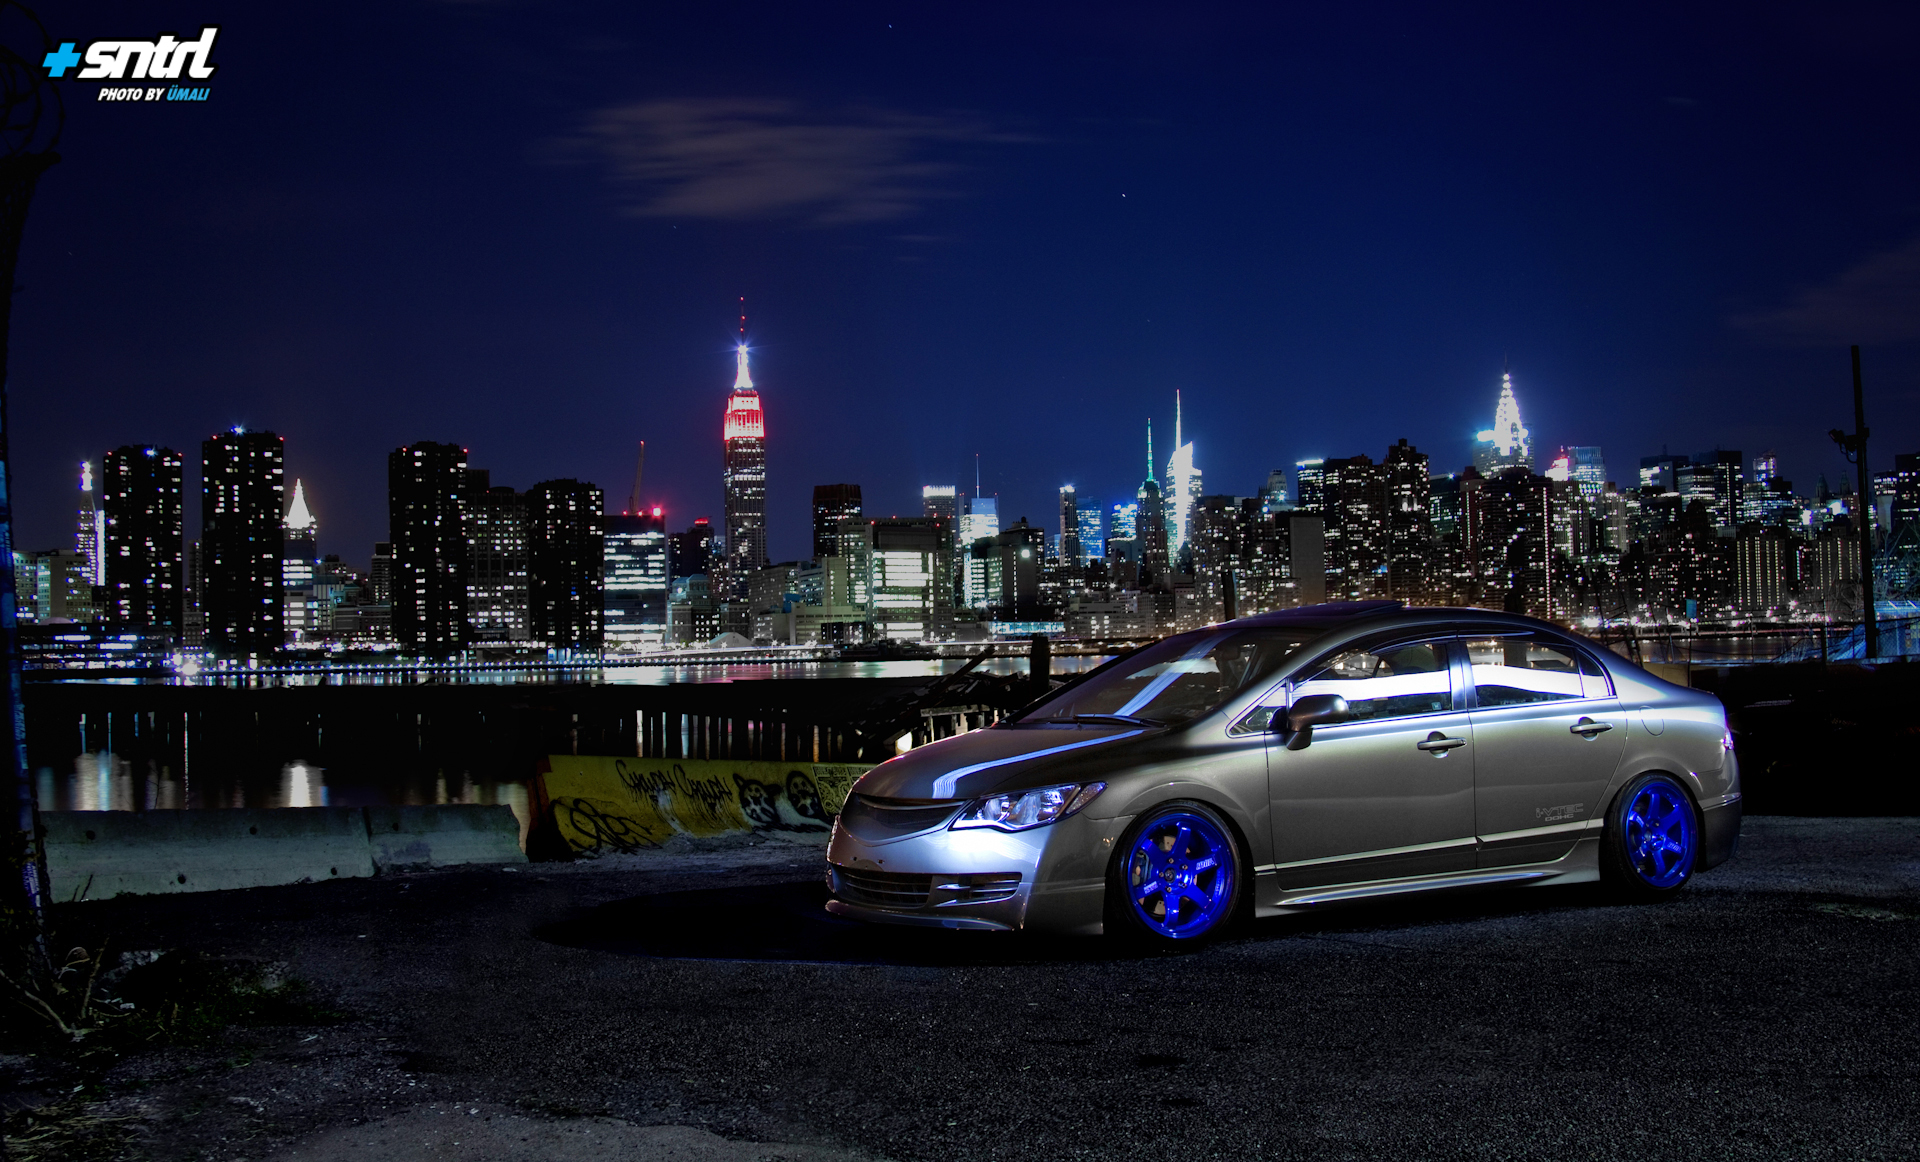 Wallpaper Wednesday Steves FA5 and NYC SNTRL 1920x1162